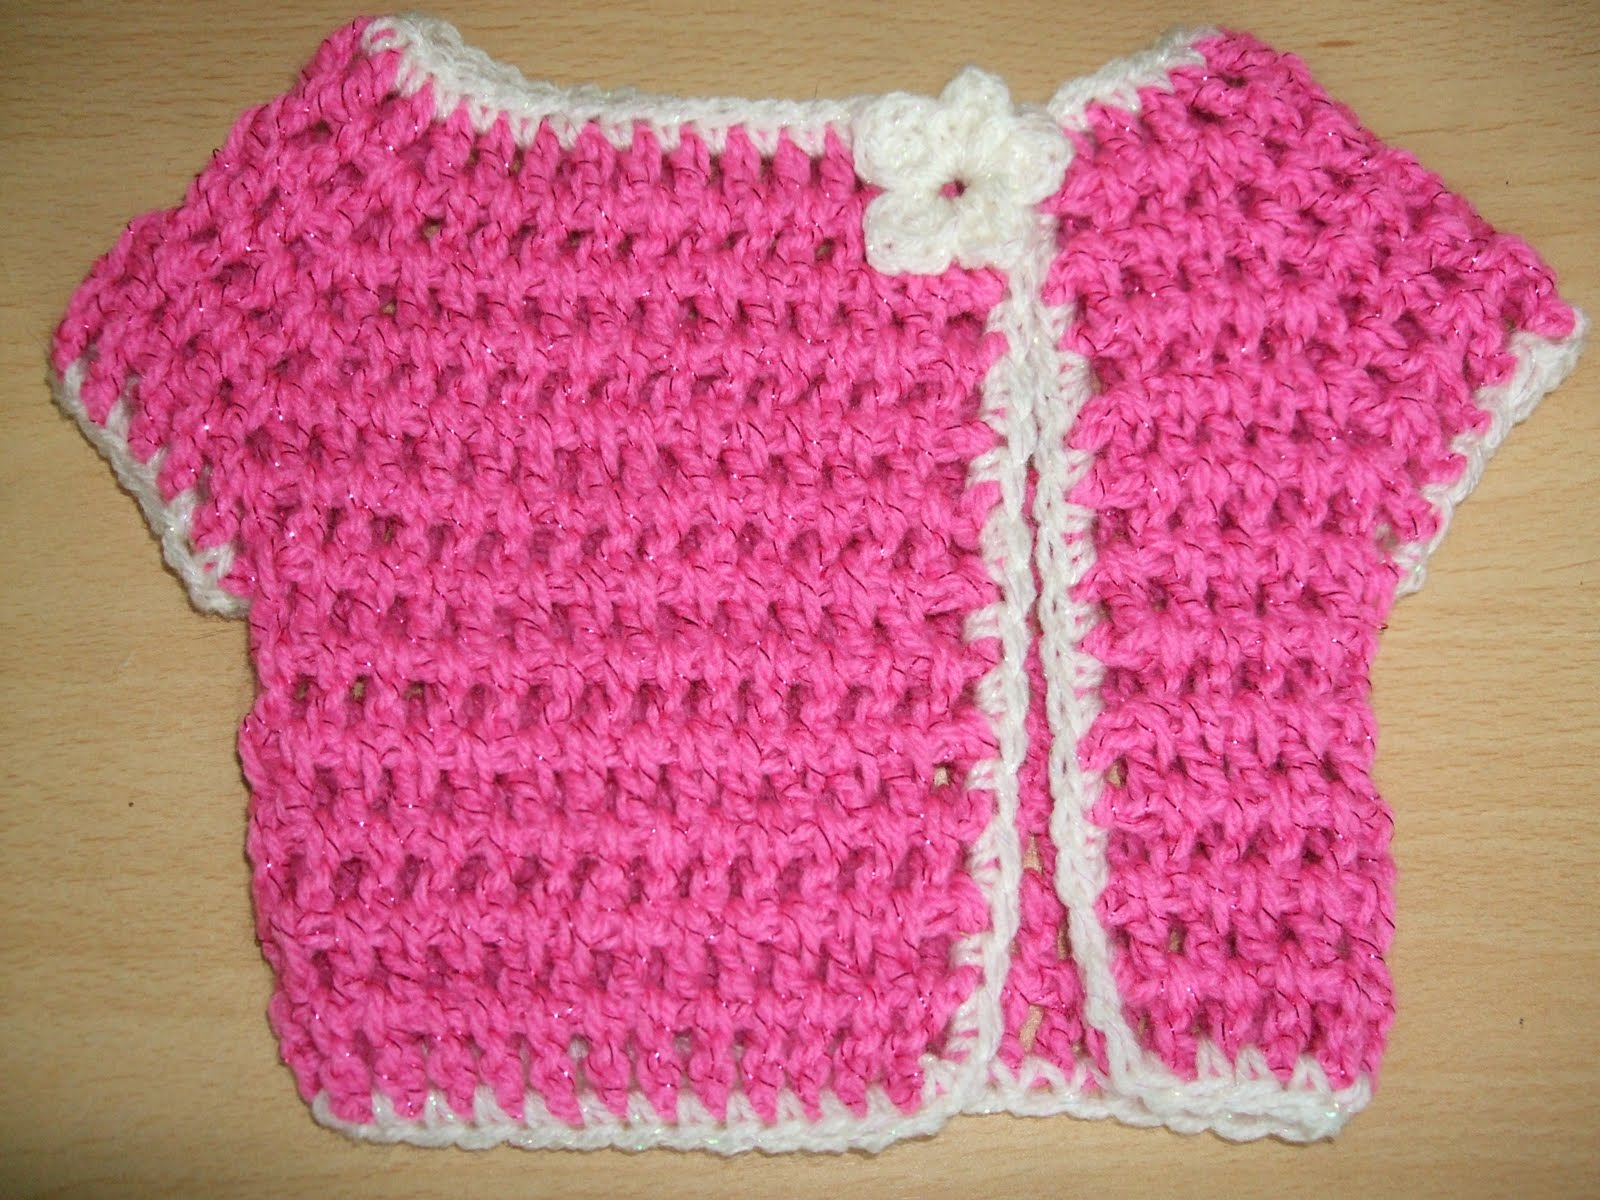 Channelles Crochet creations: Japanese Style Baby Jacket